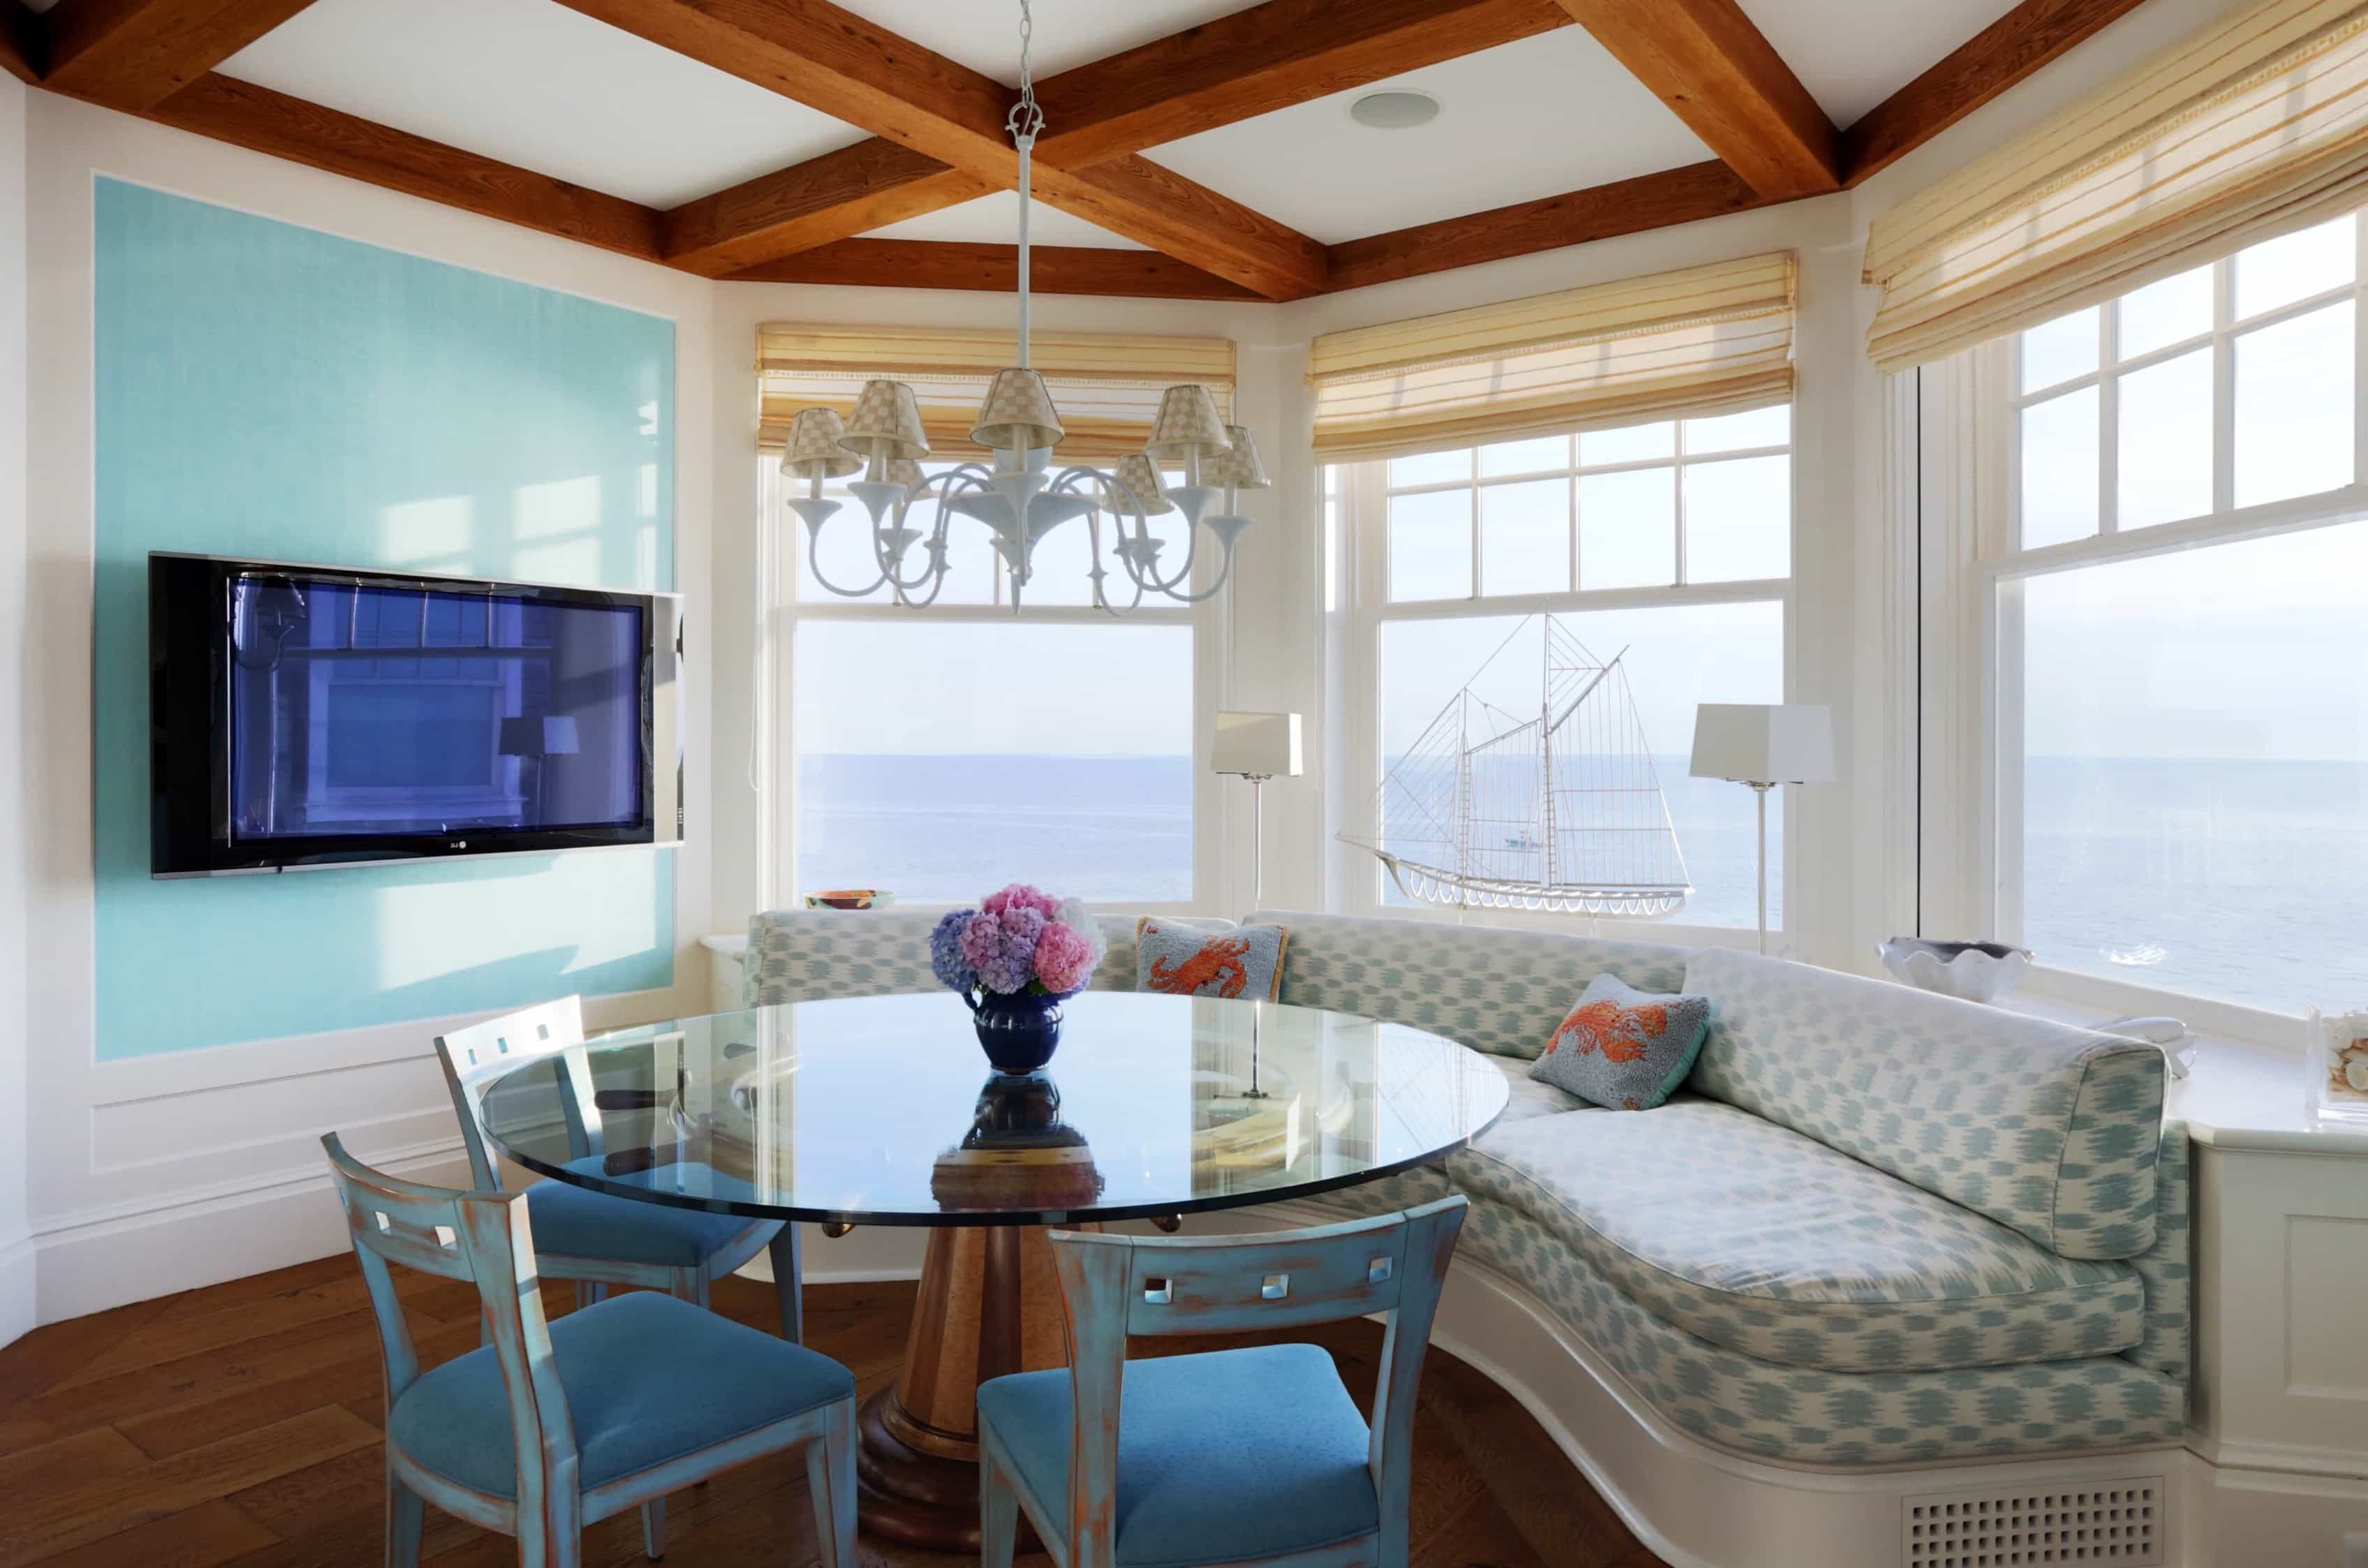 Featured Image of Nautical Blue And White Breakfast Nook